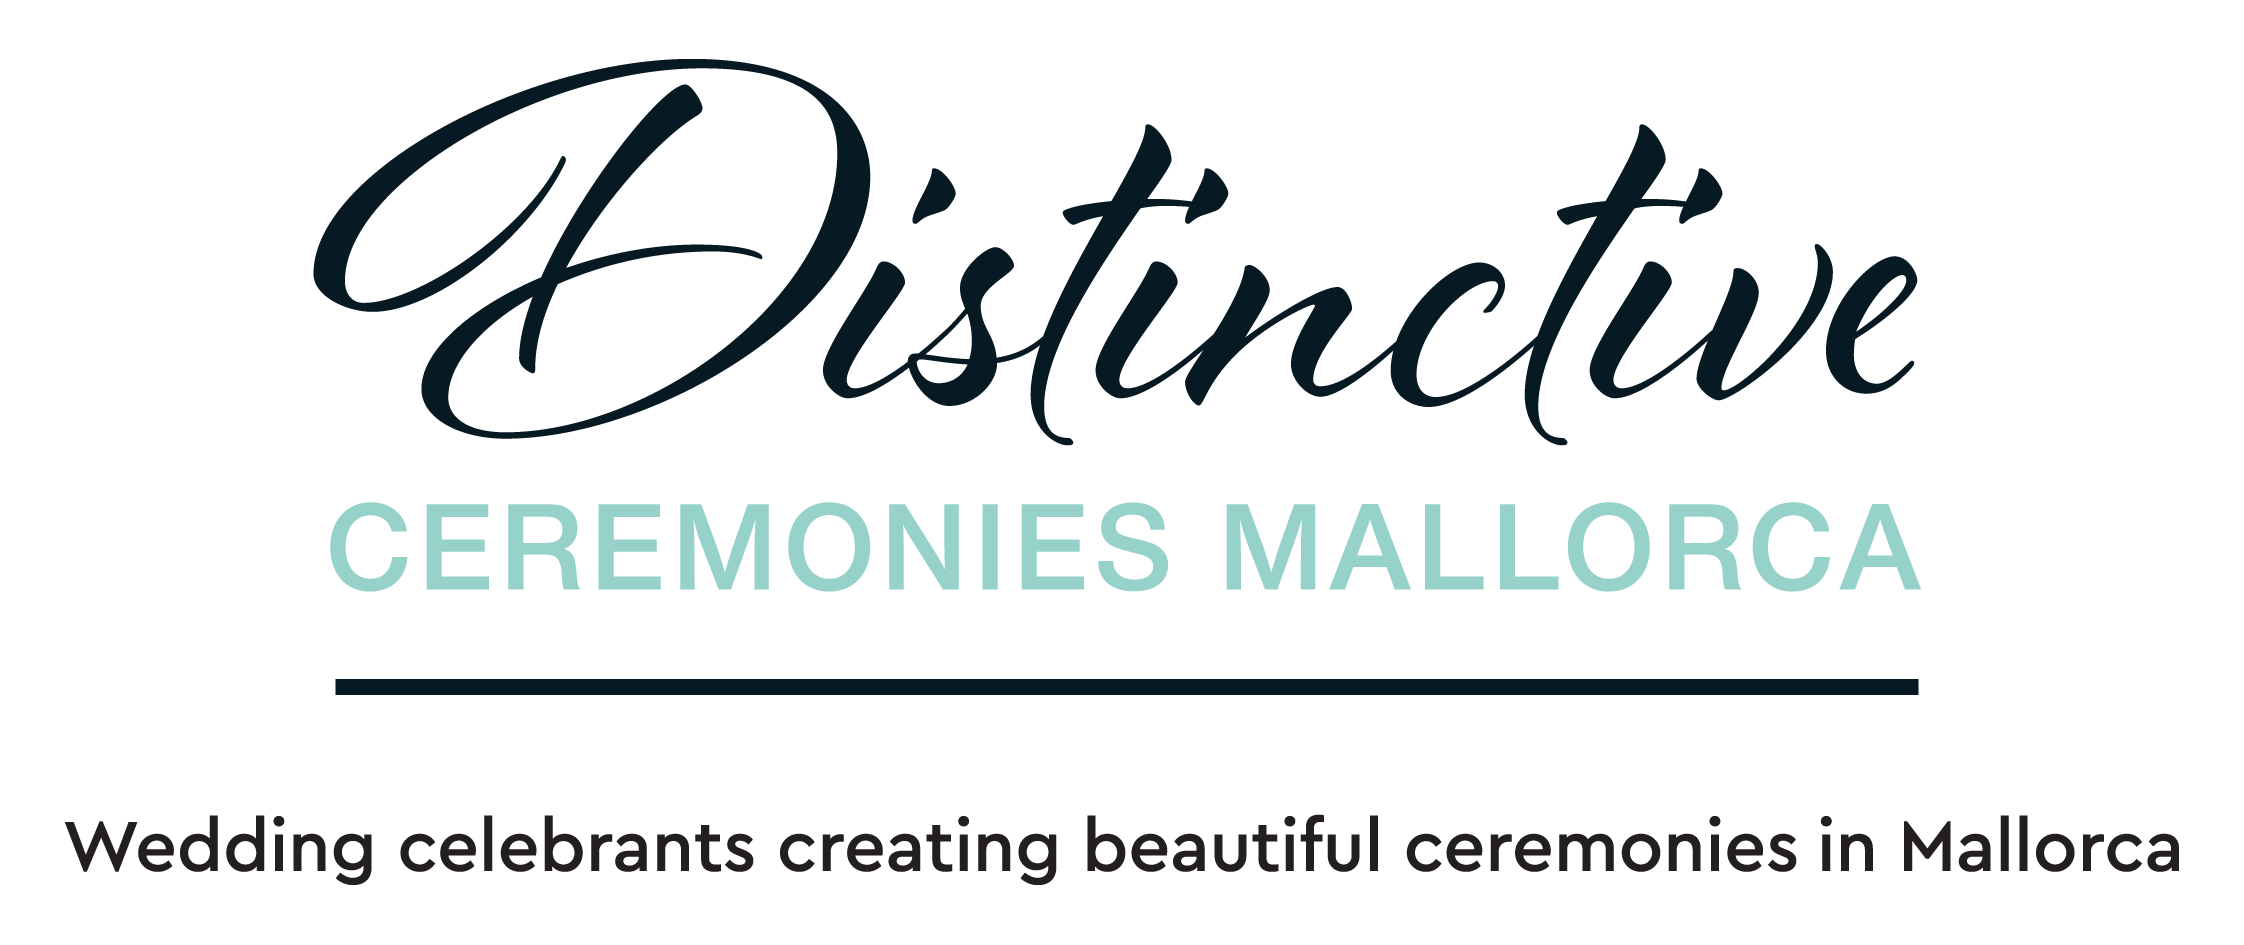 Distinctive Ceremonies Mallorca